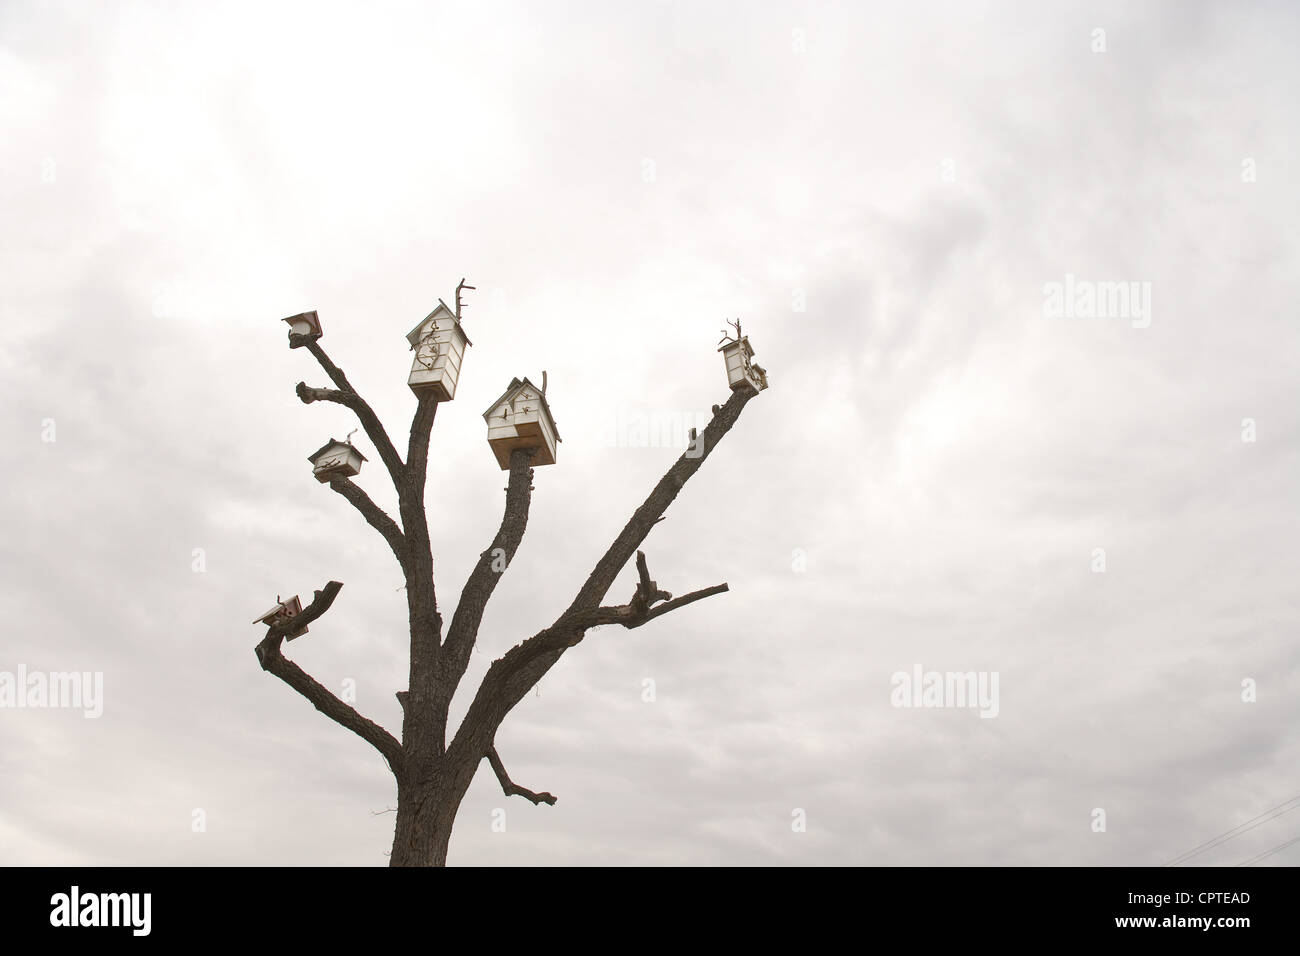 Birdhouses on tree against overcast sky - Stock Image